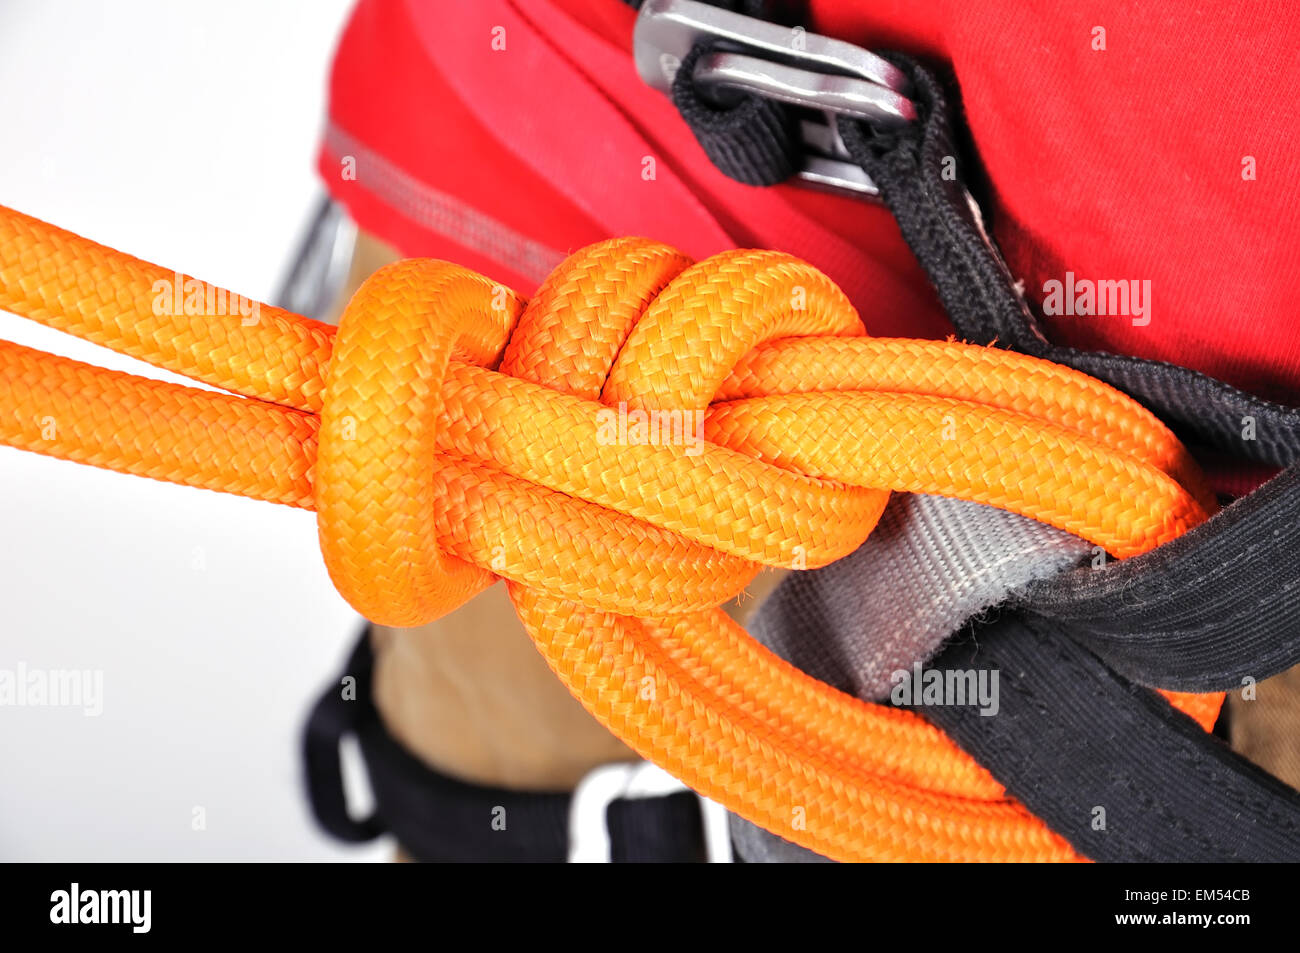 Double Bowline Stock Photos Images Alamy Water Knot How To Tie A Boating Knots Close Up Image